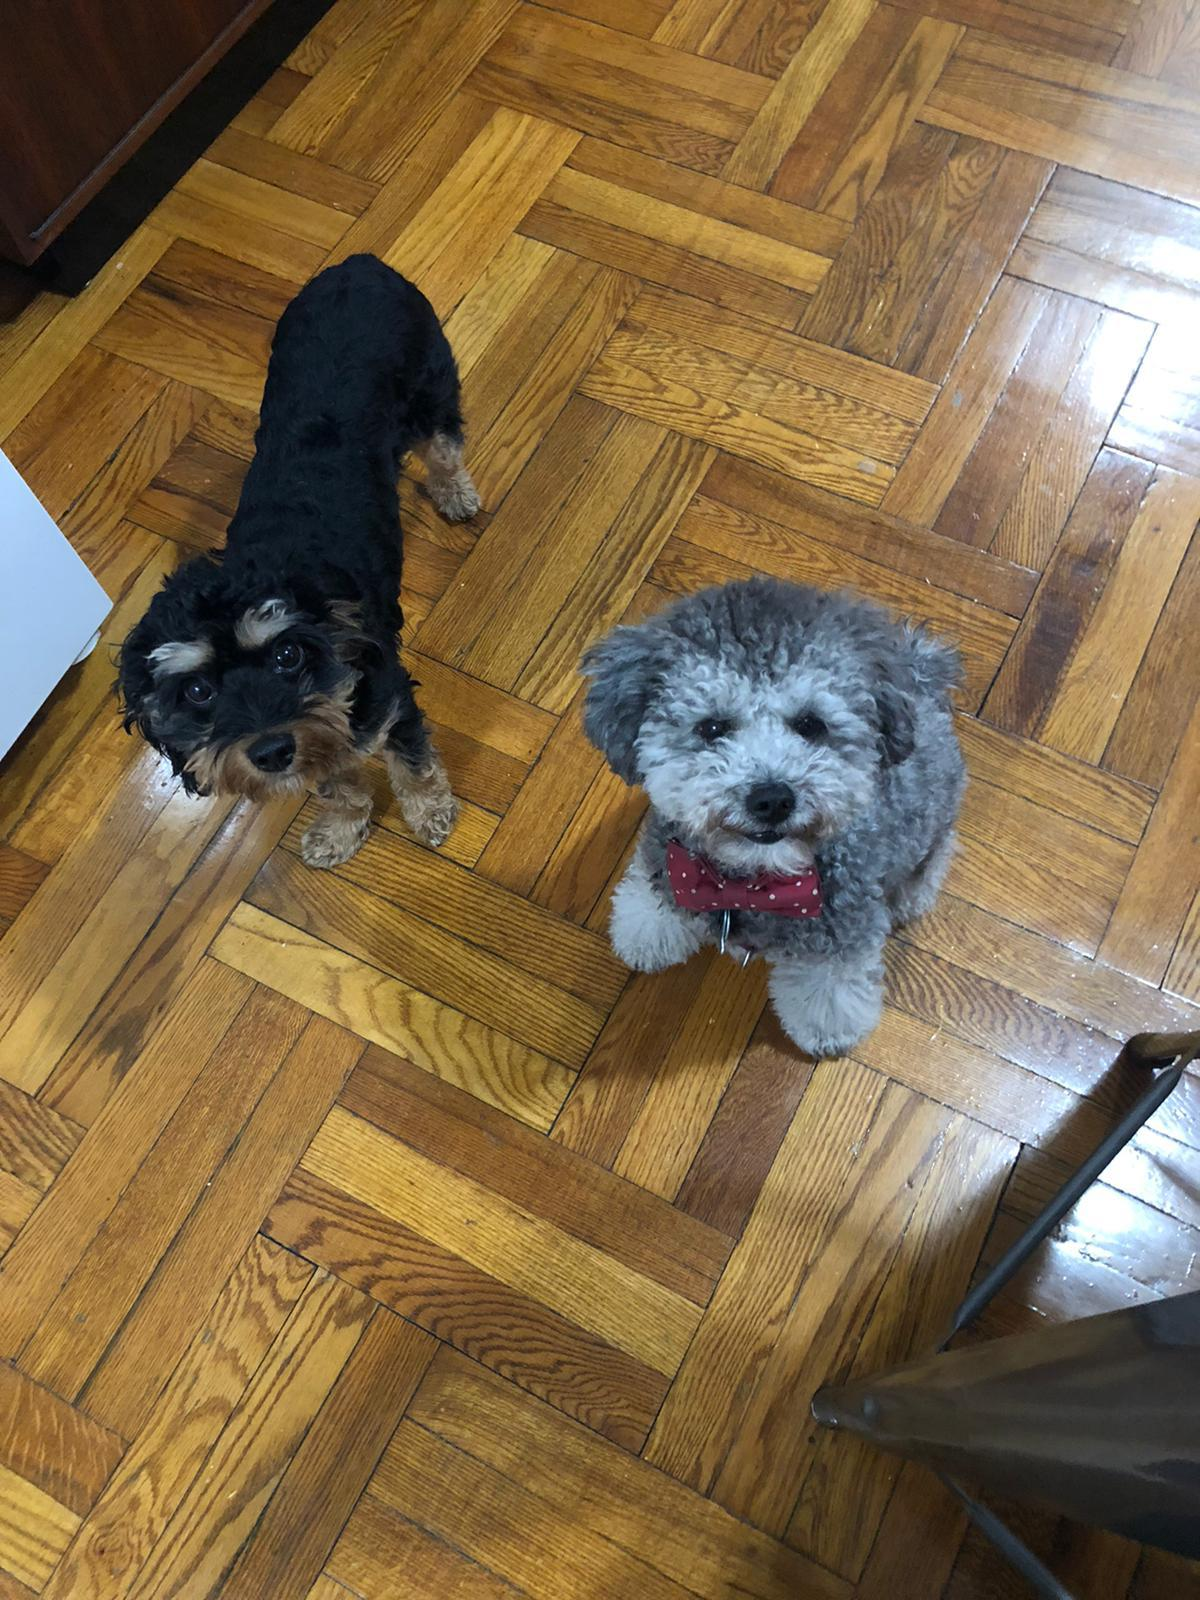 Baboy (cavapoo) and Theo (mini poodle) - best friends for life